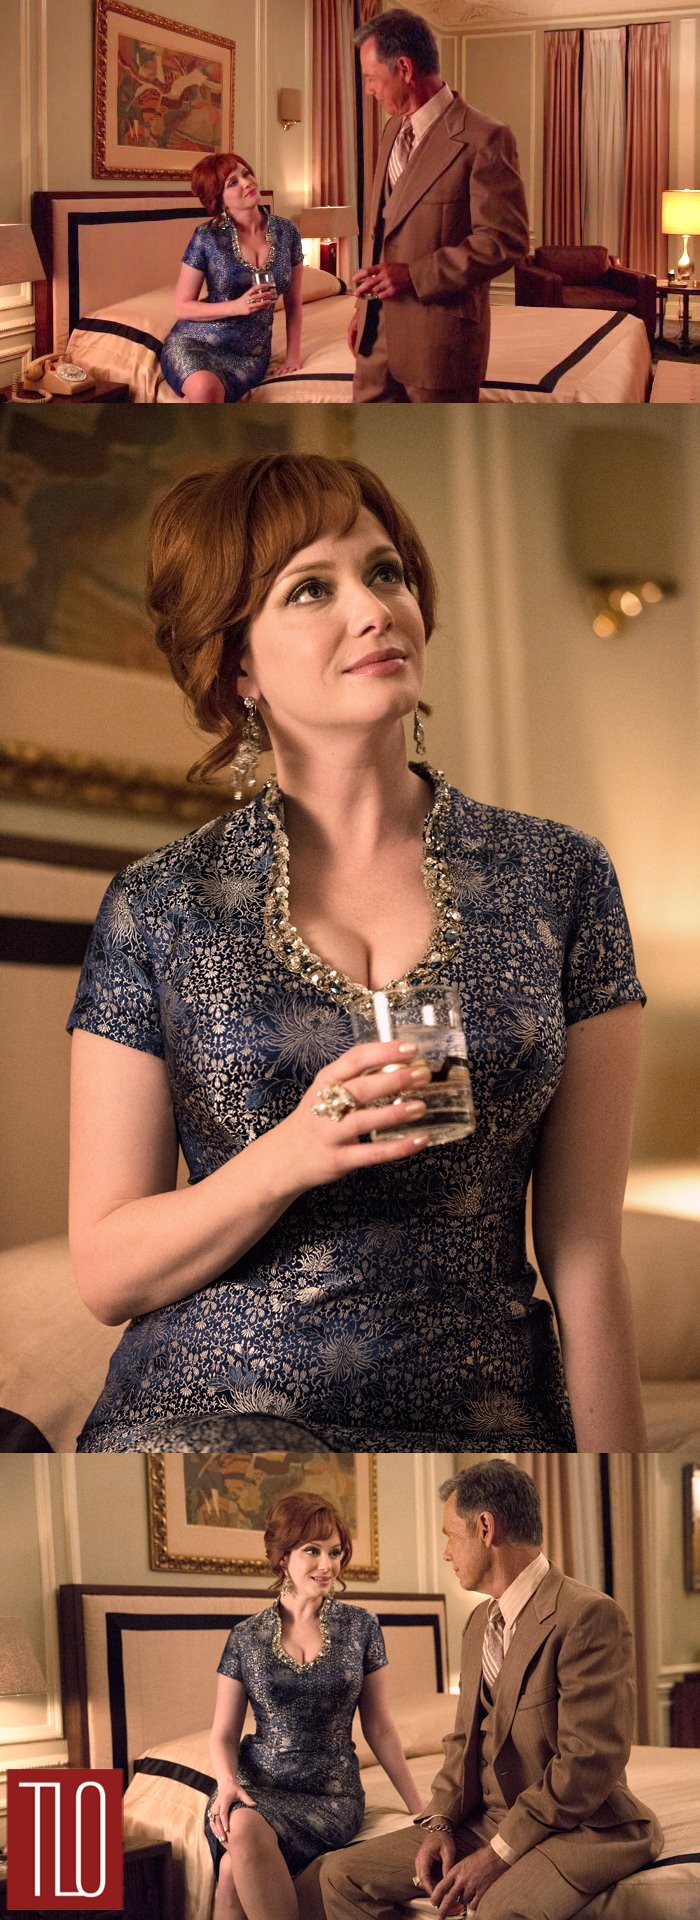 Mad-Men-Television-Mad-Style-Episode-New-Business-Tom-Lorenzo-Site-TLO (17)